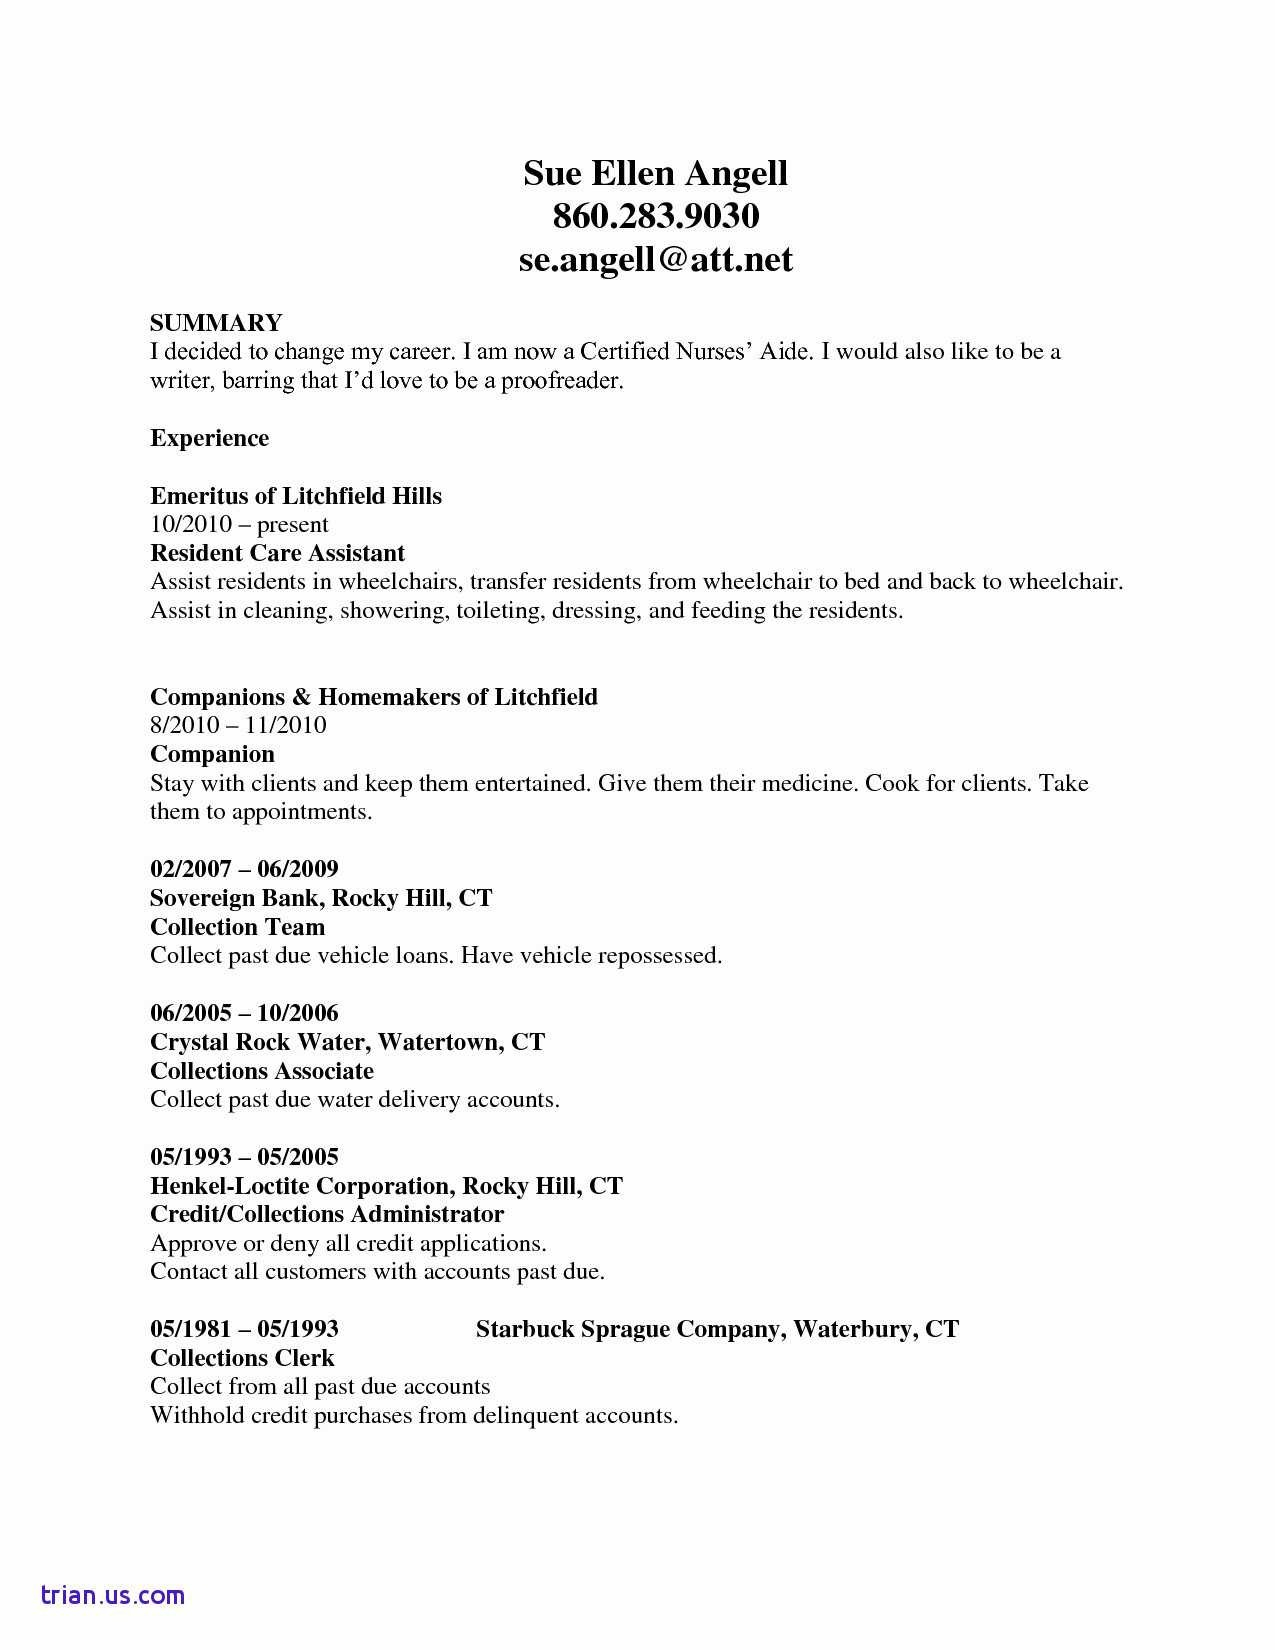 Lifeguard Responsibilities for Resume - Pediatric Nurse Resume